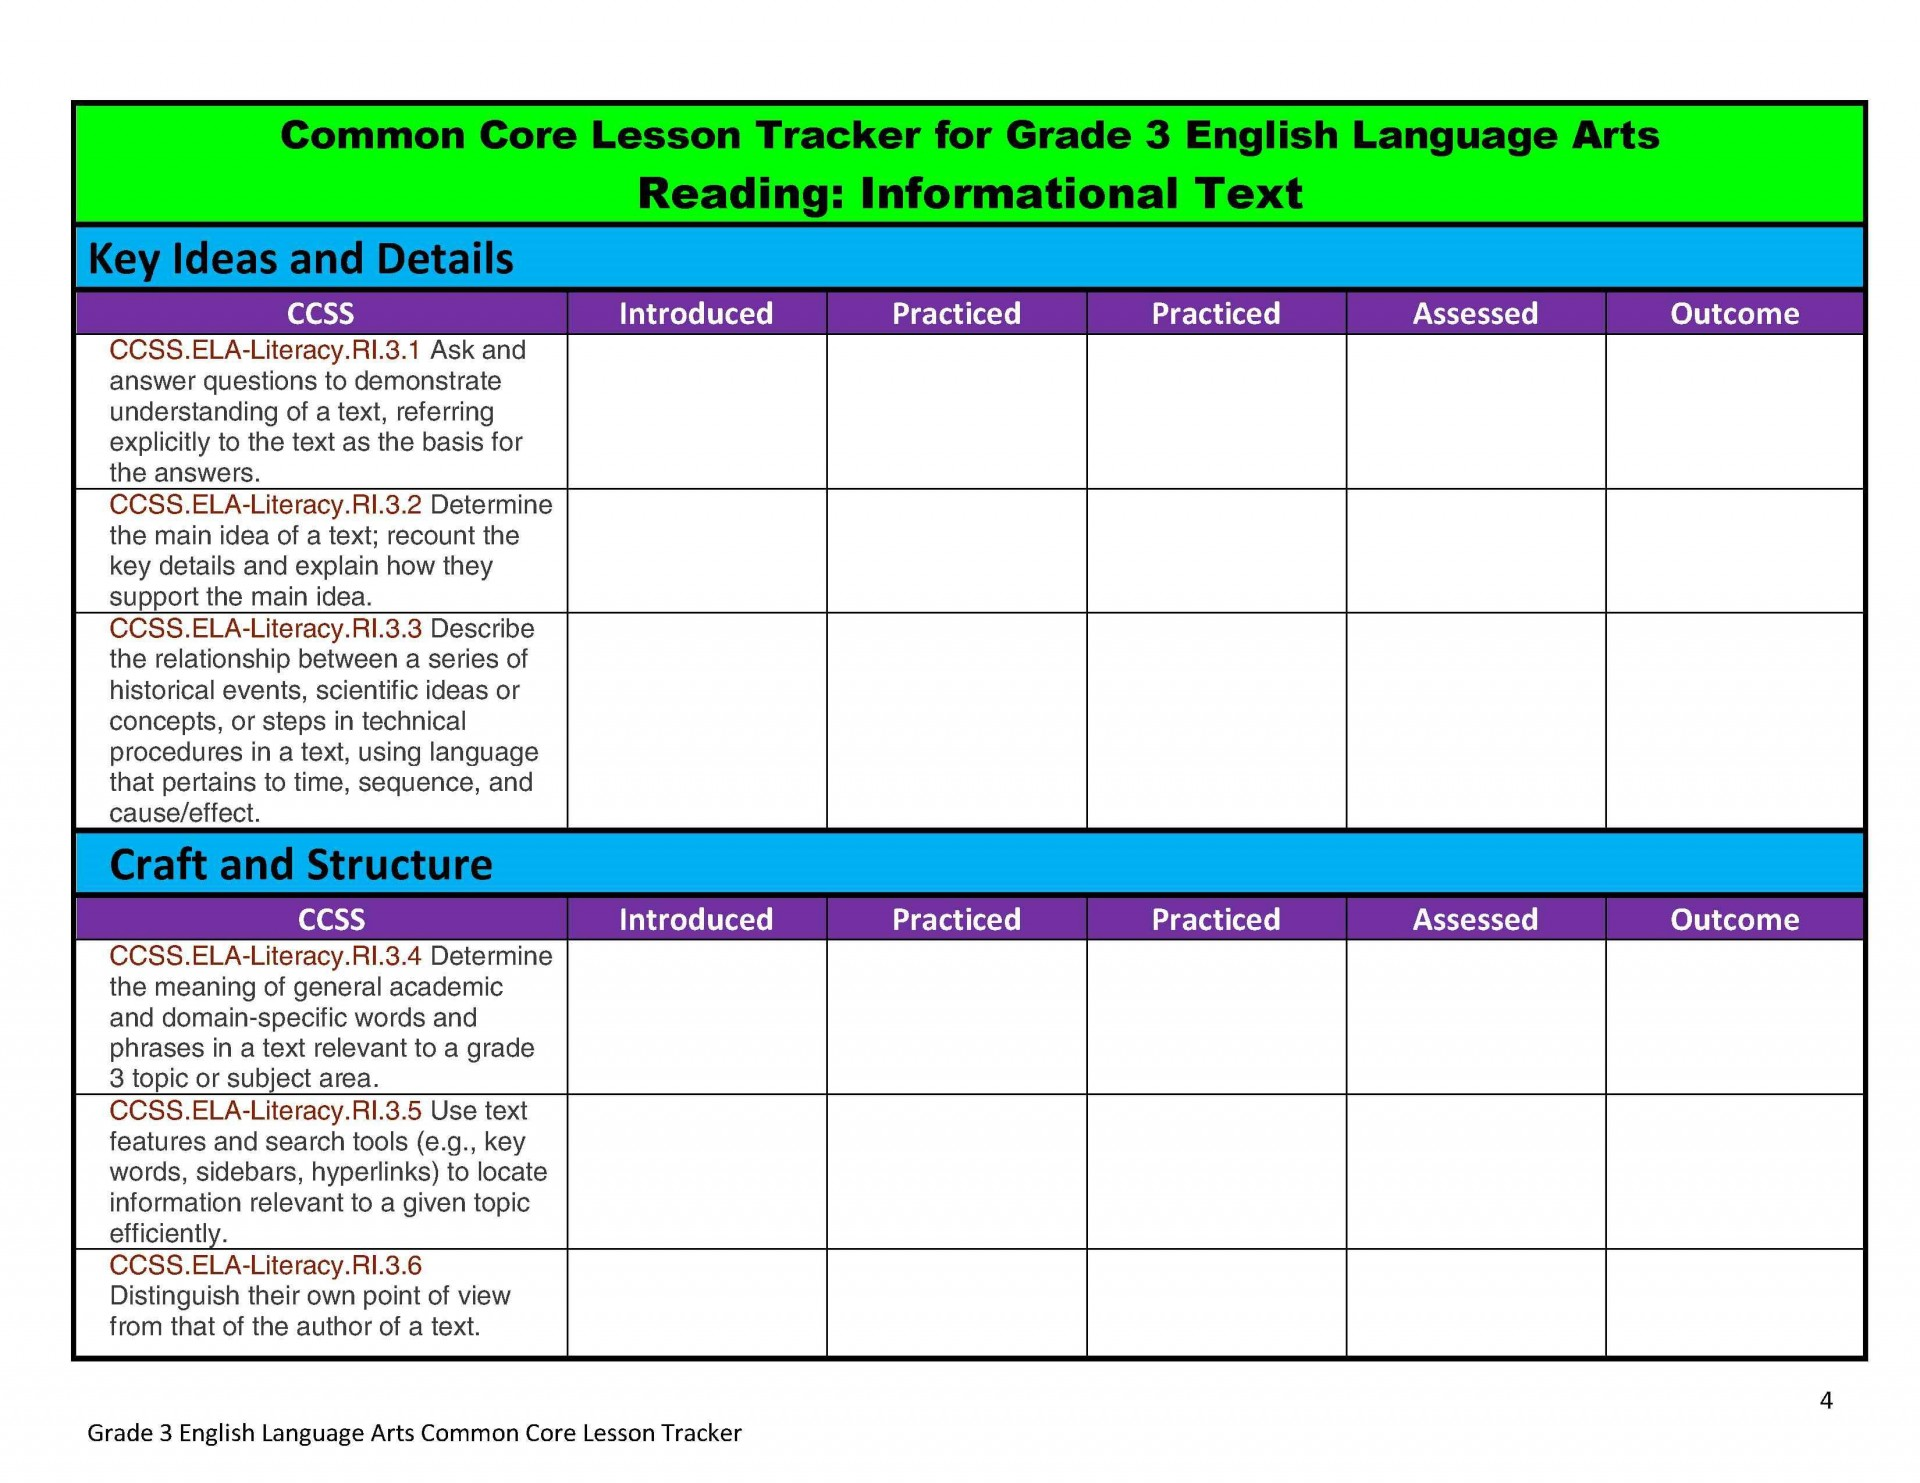 004 Marvelou Kindergarten Lesson Plan Template With Common Core Standard High Def  Sample Using1920